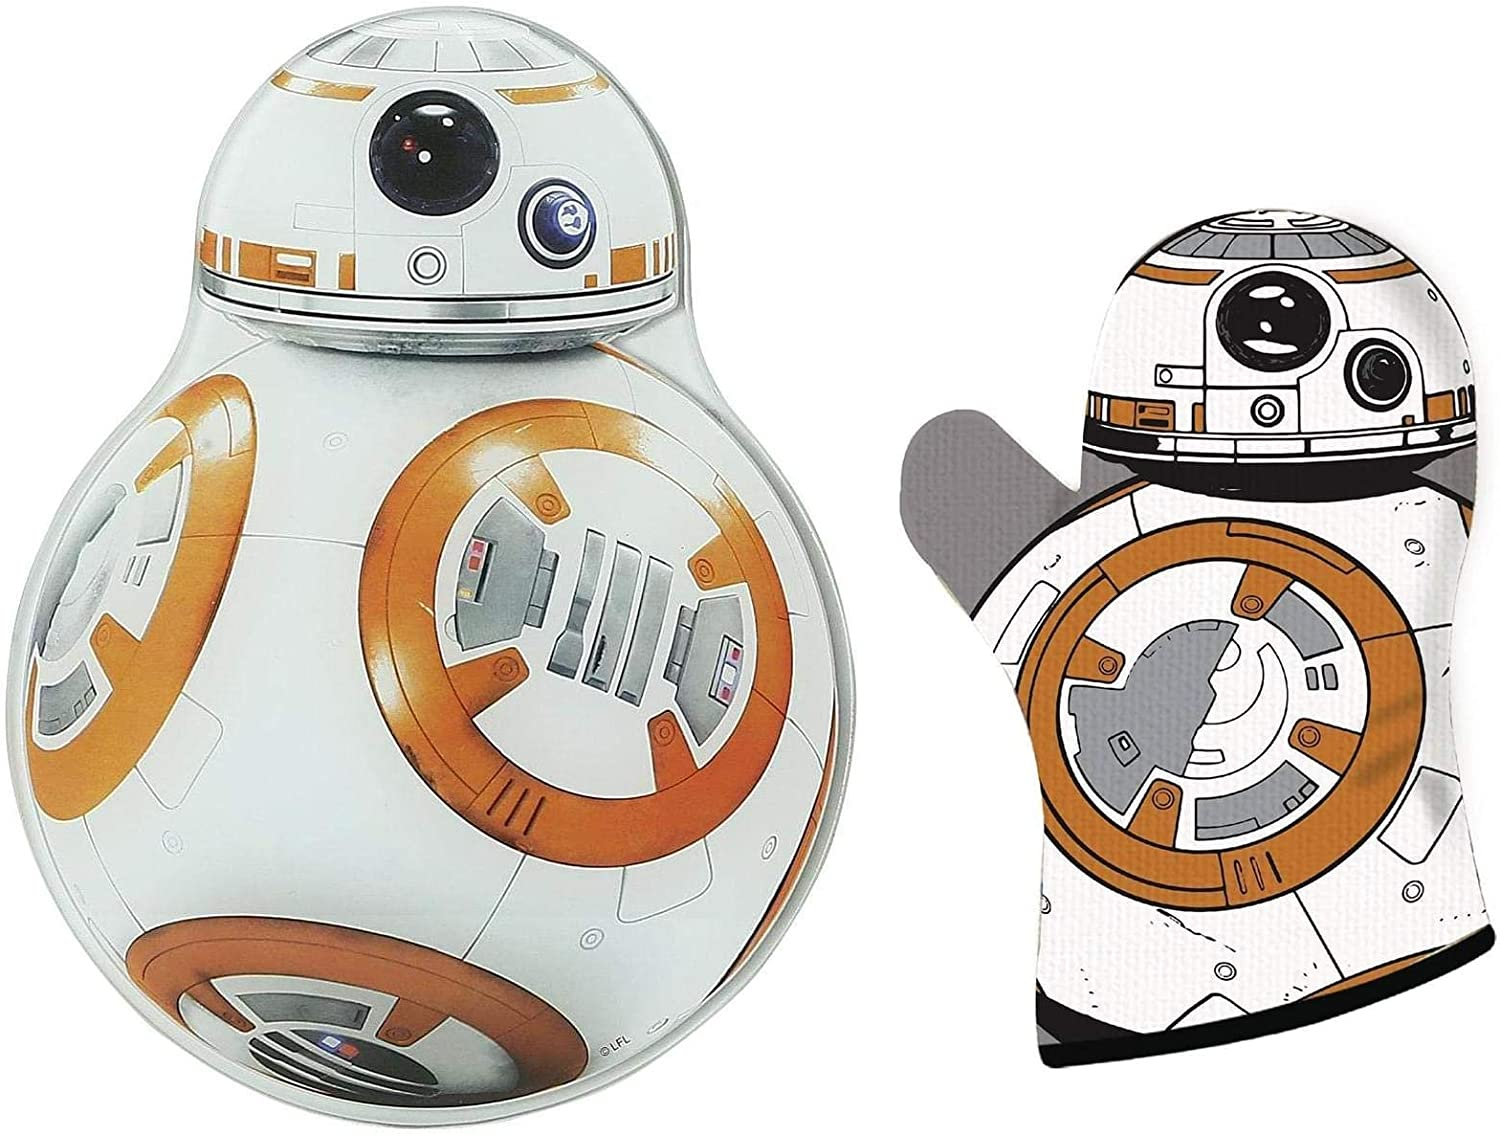 Toynk Star Wars BB-8 Glass Cutting Board and Oven Mitt Set